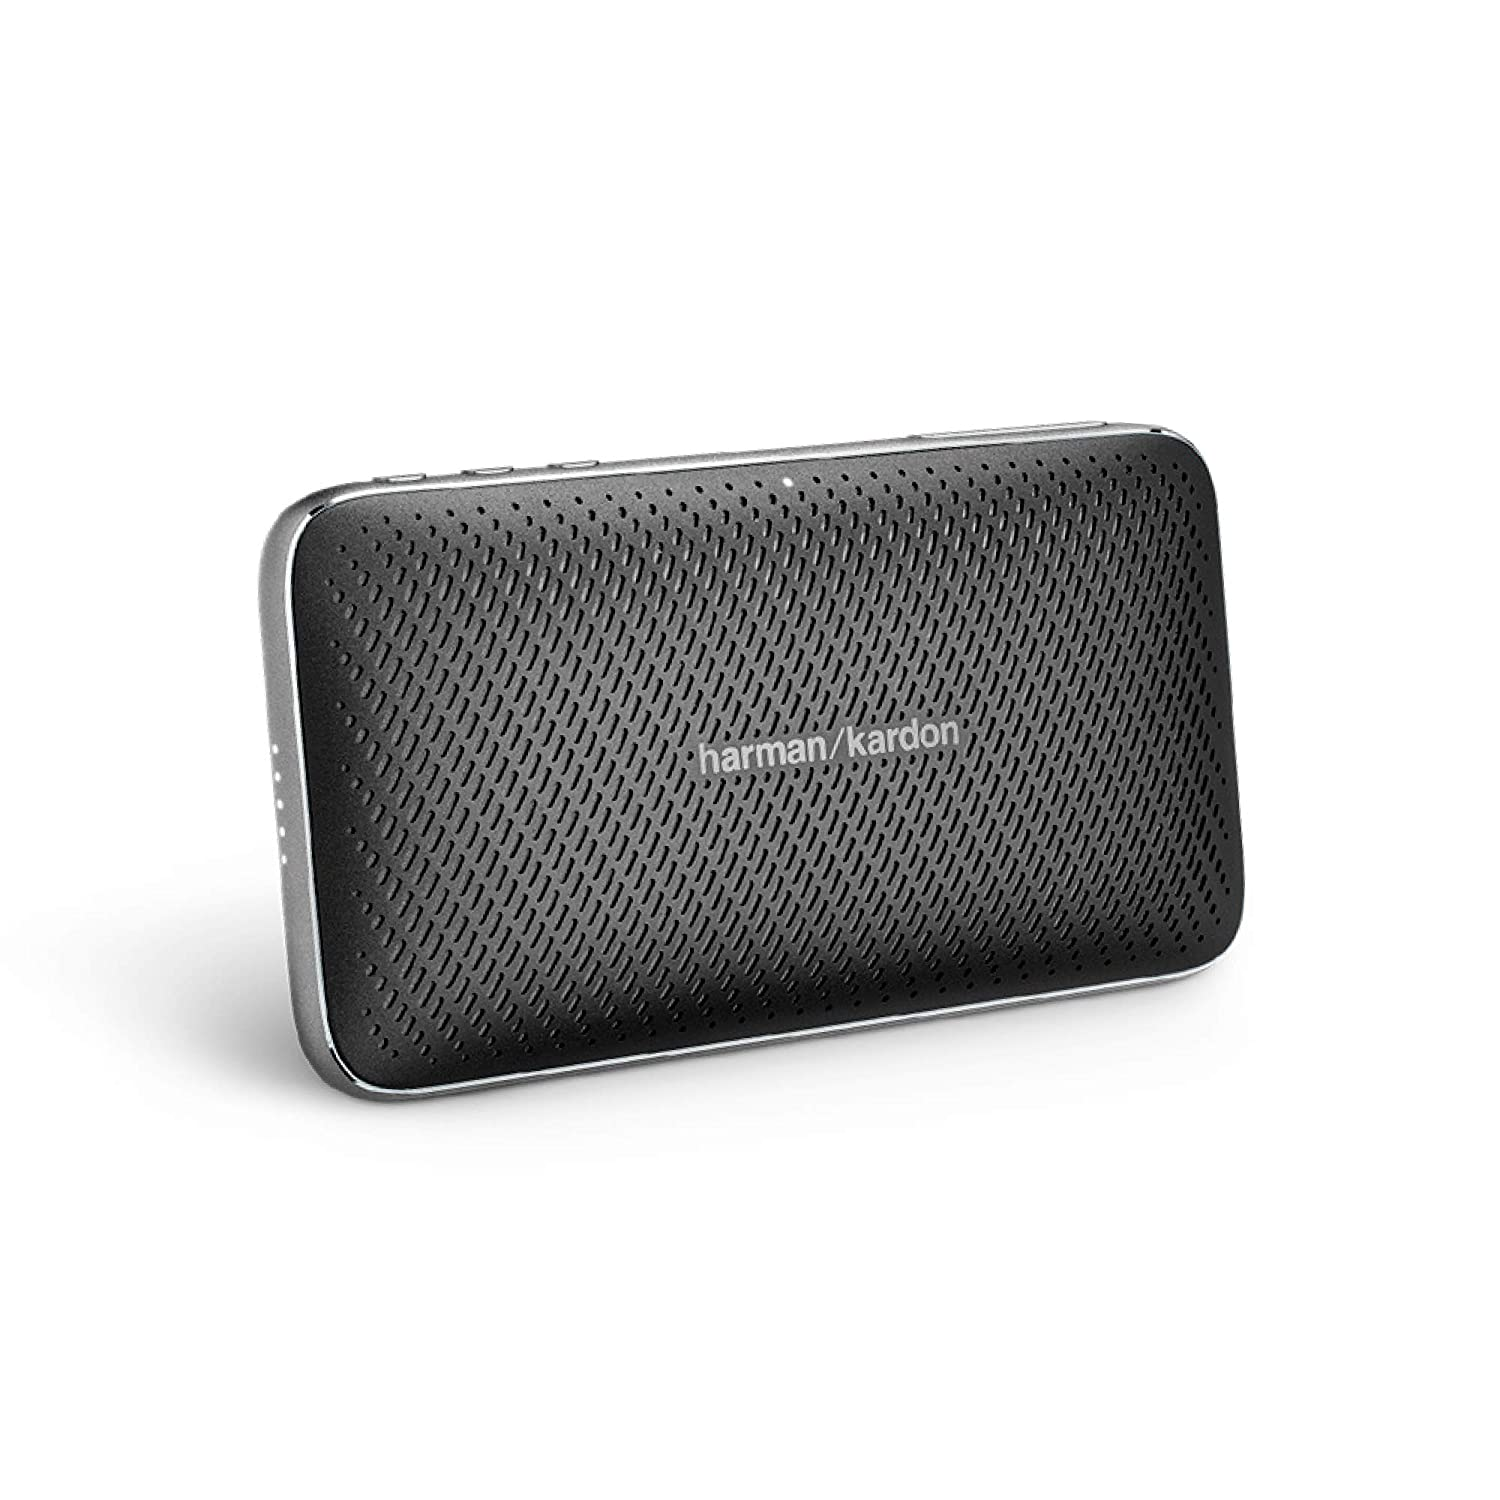 Harman Kardon Esquire Mini 2 Portable Bluetooth Speaker with Mic and Powerbank - Black